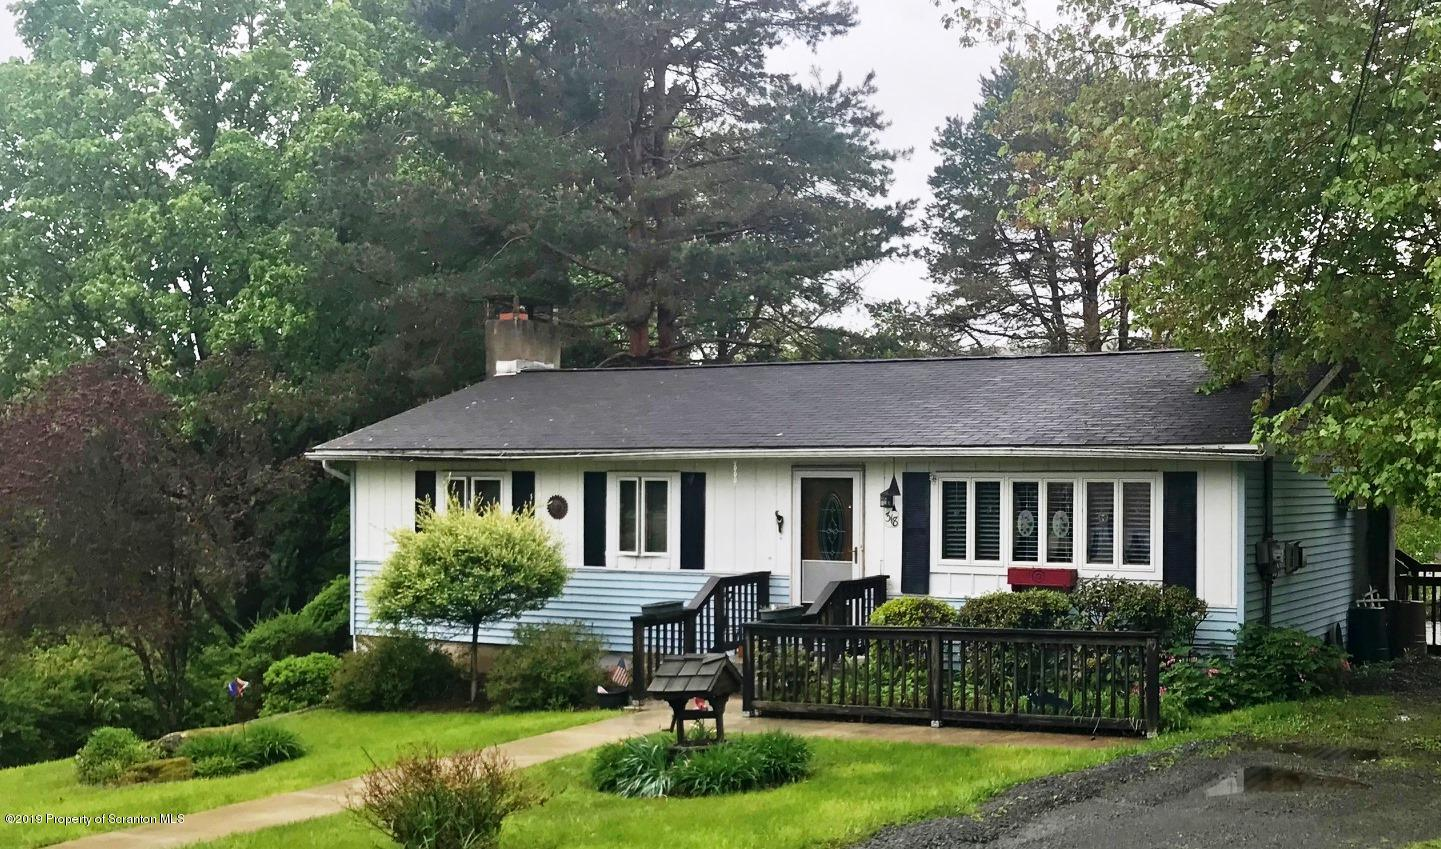 318 TRACY ST, Honesdale, Pennsylvania 18431, 3 Bedrooms Bedrooms, 7 Rooms Rooms,1 BathroomBathrooms,Single Family,For Sale,TRACY,19-2461